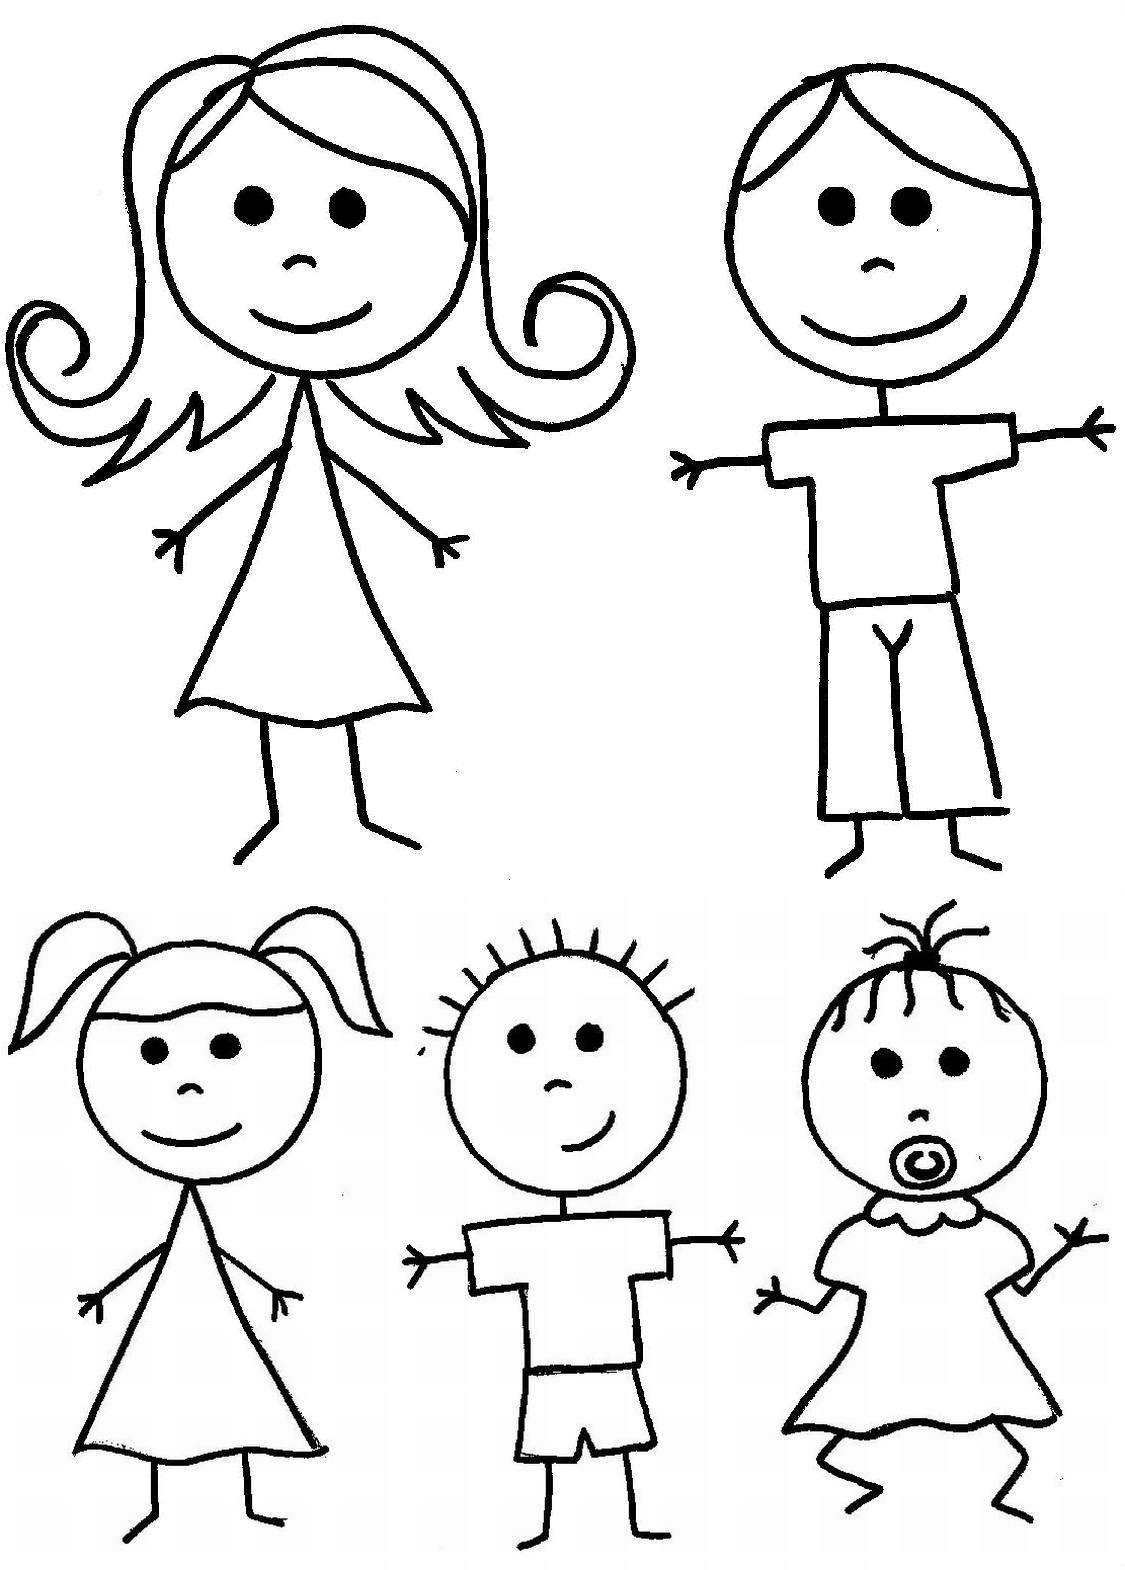 coloring pictures of people people coloring pages getcoloringpagescom coloring pictures of people 1 2